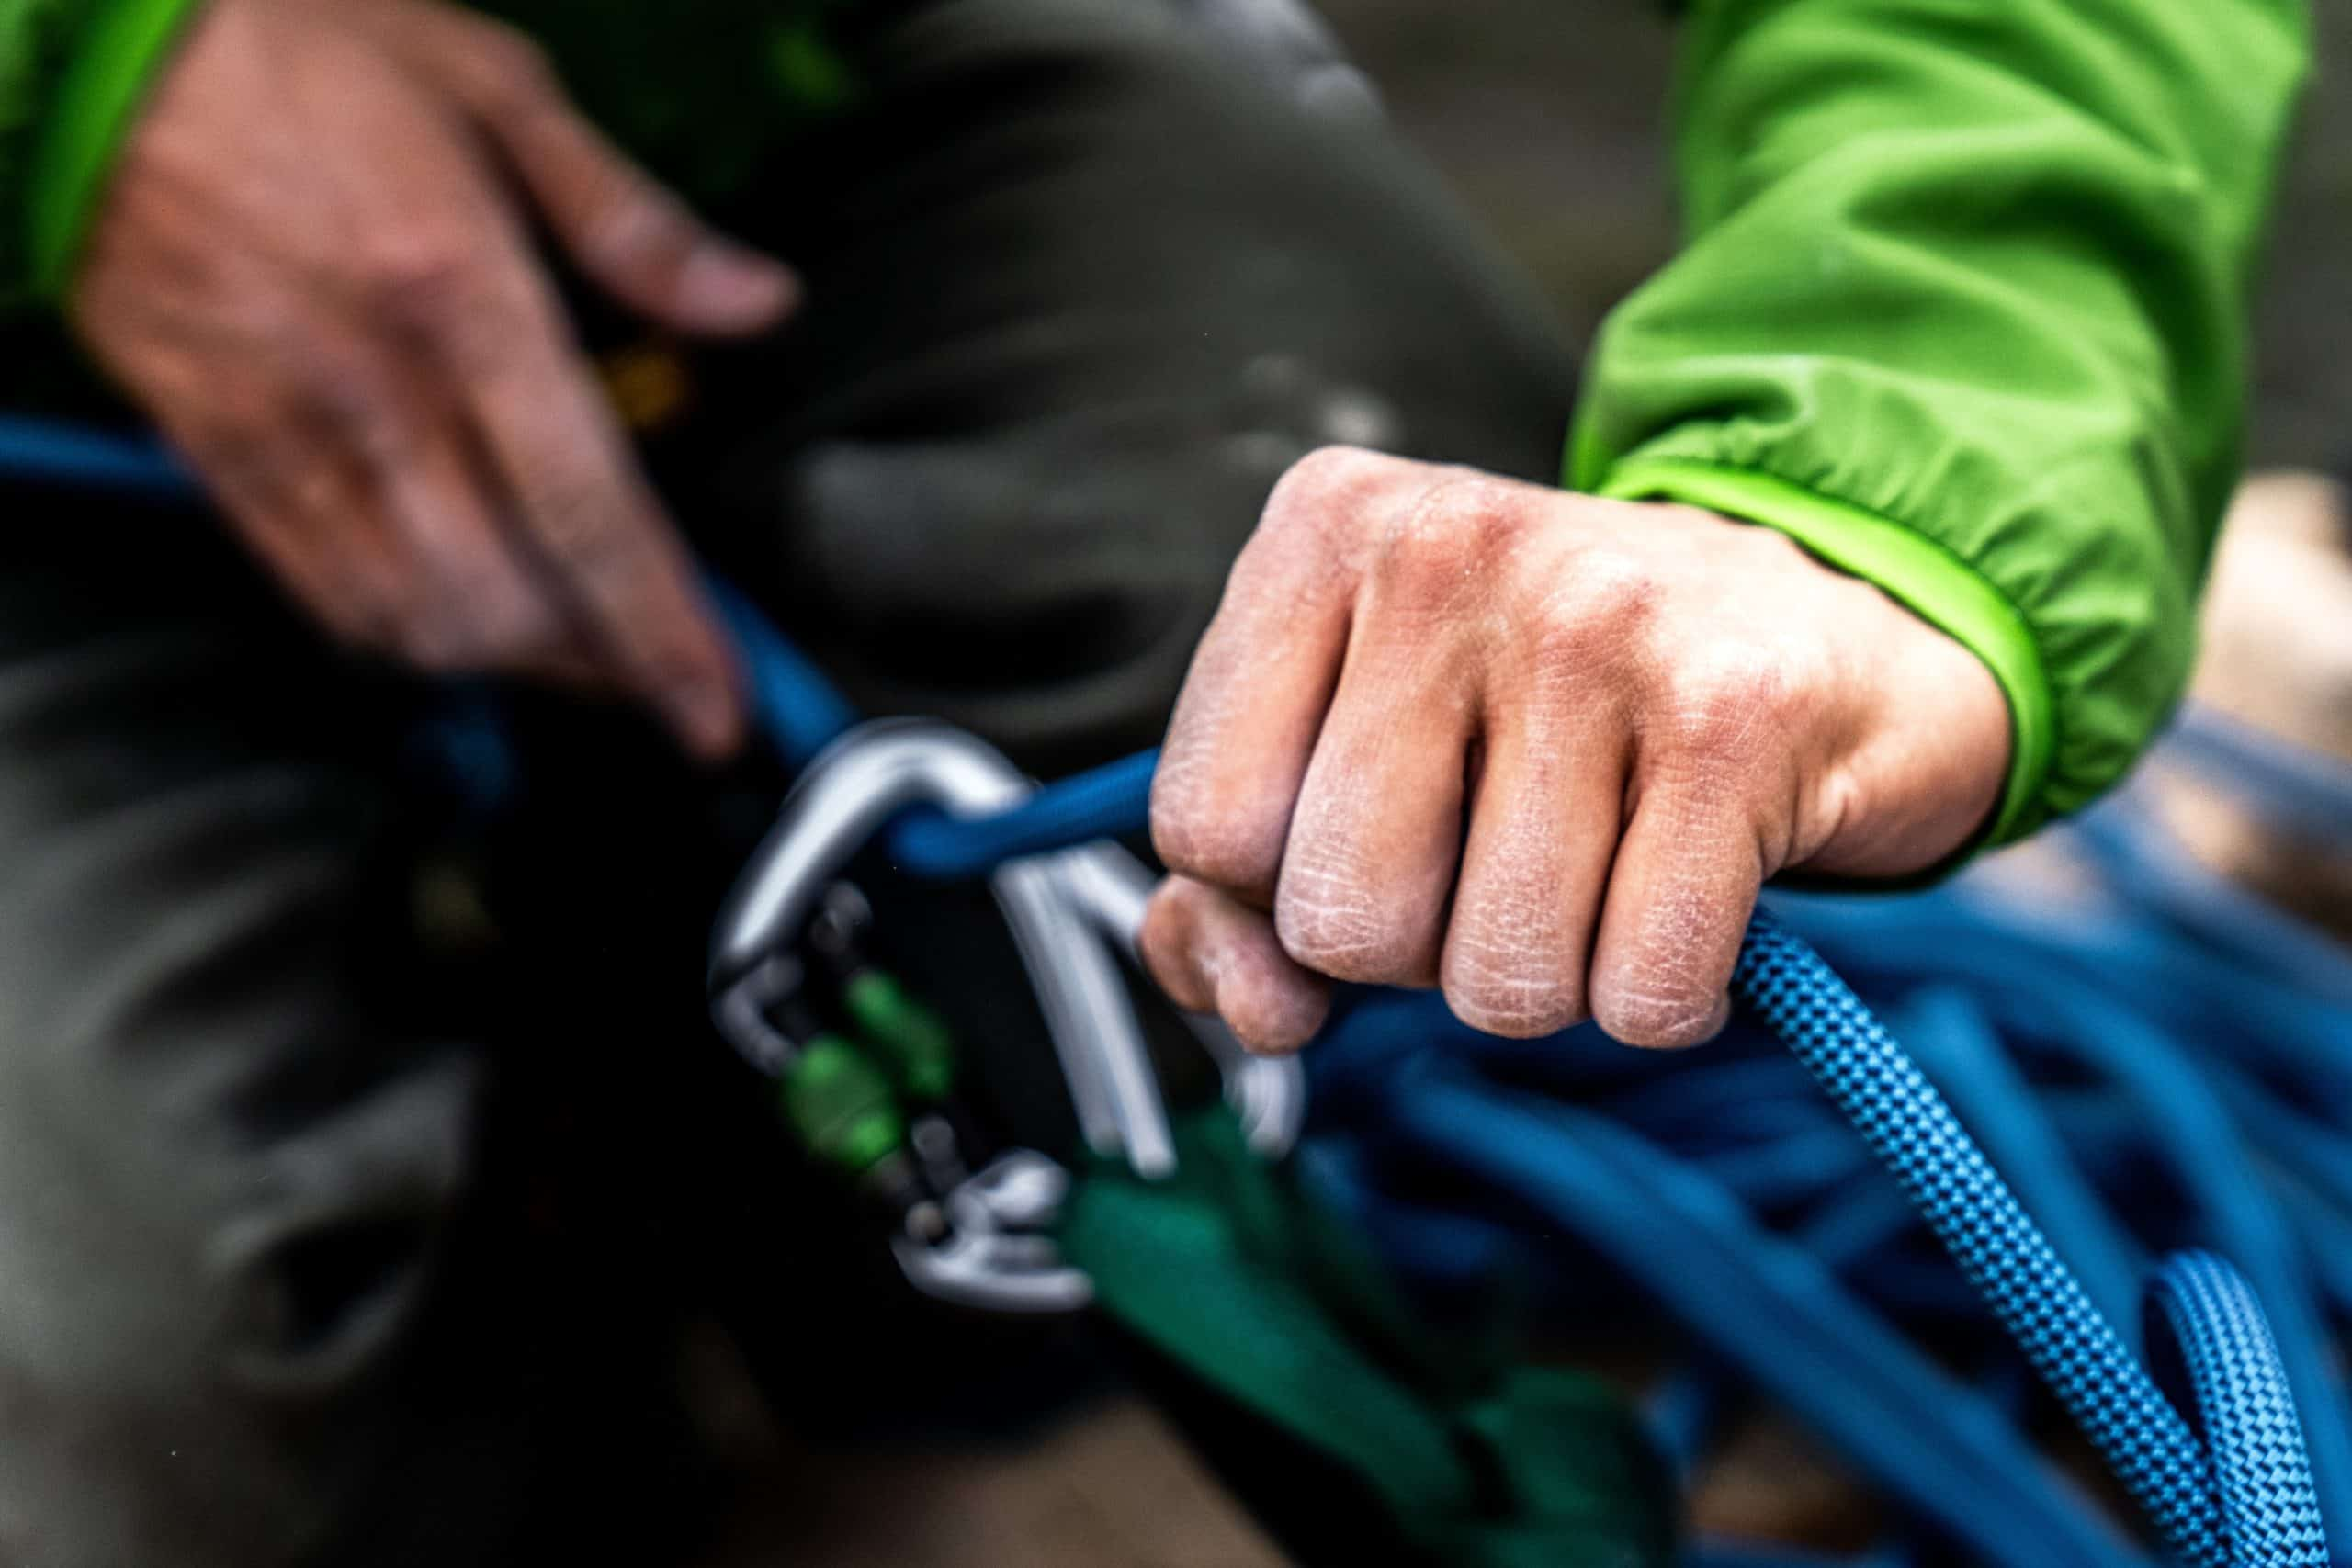 How To Tie climbing Knots, Hitches And Bends